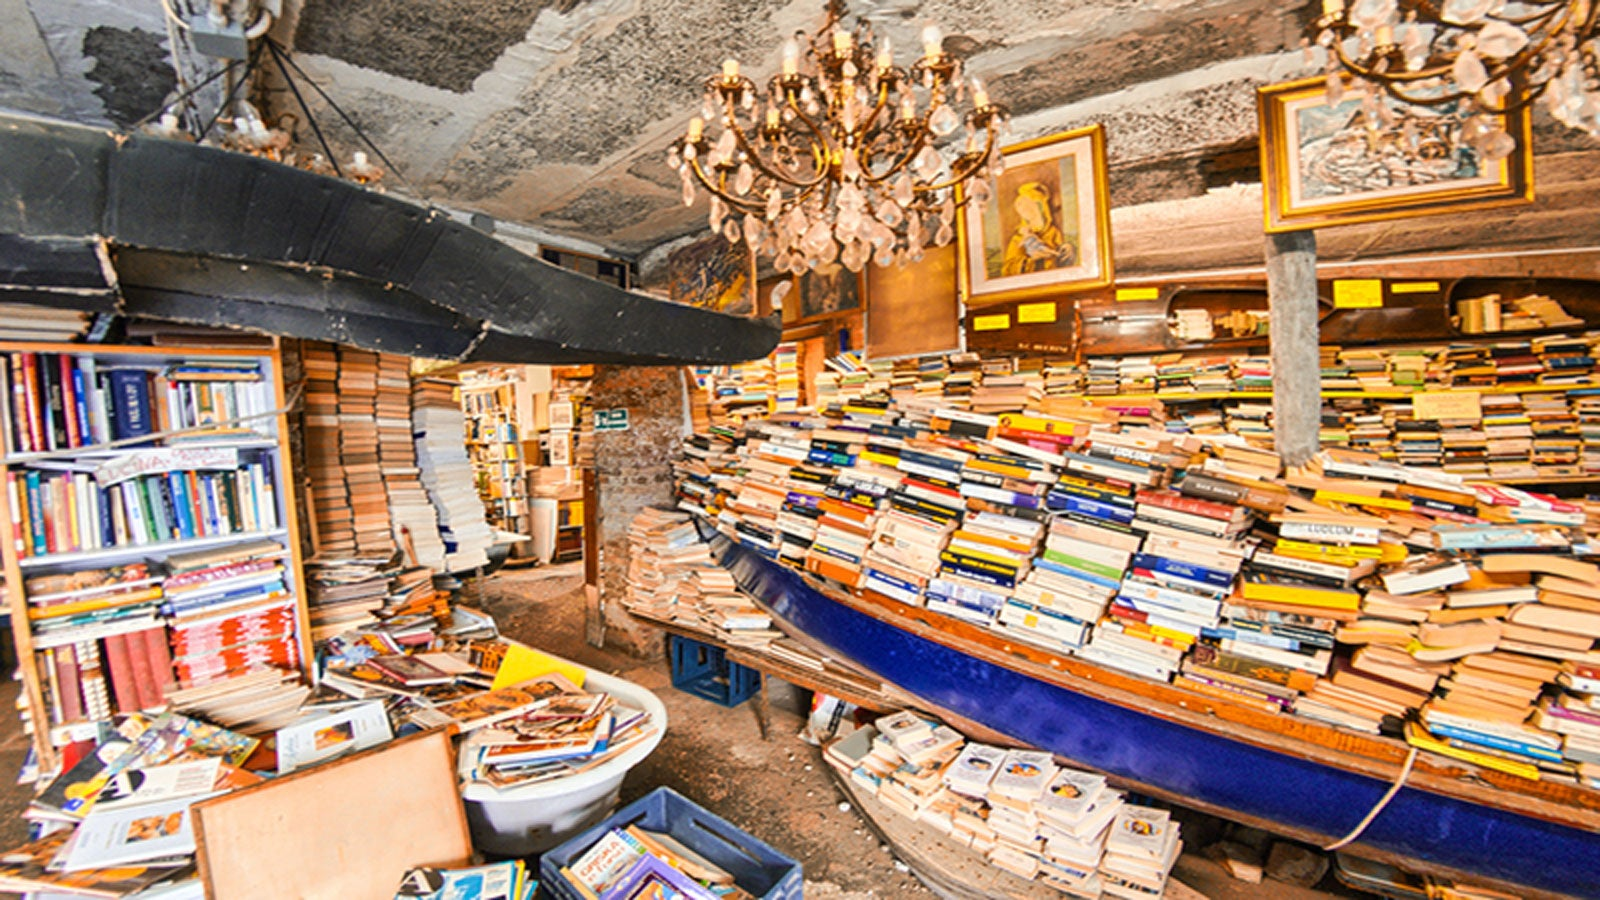 a crowded second hand bookshop wth a row-boat crammed full of books n the centre of the room